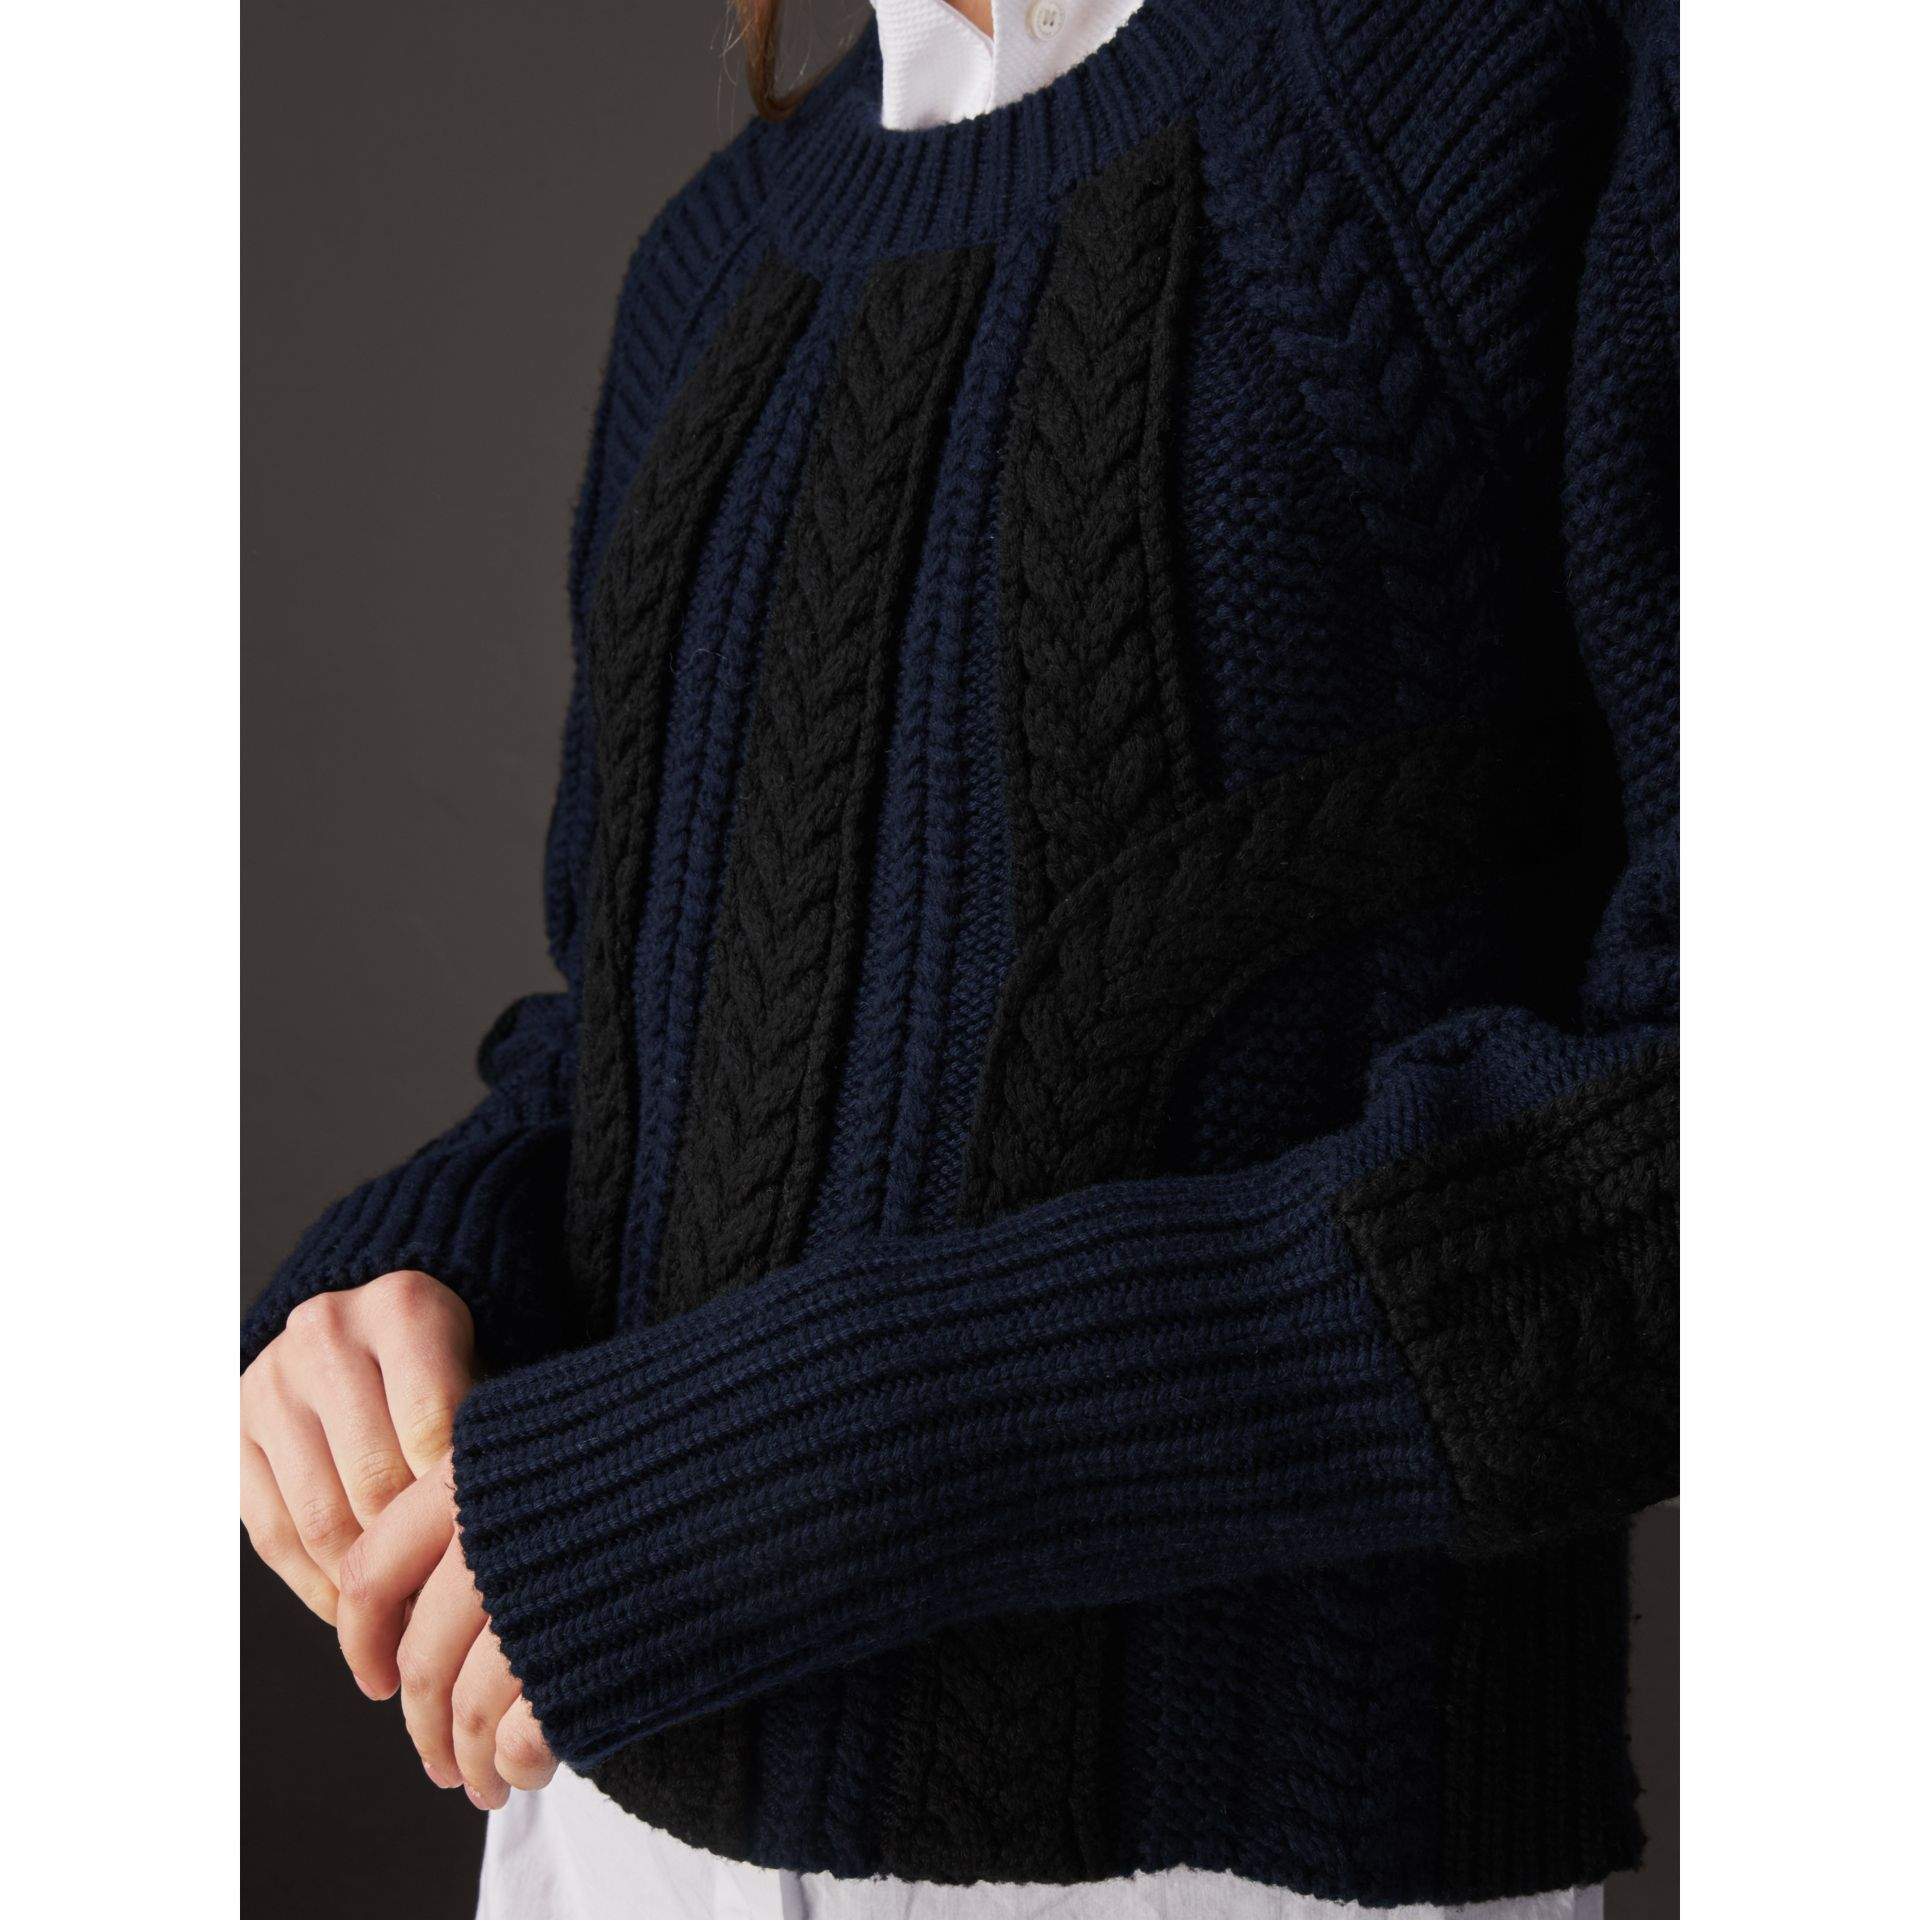 Two-tone Cable Knit Wool Cashmere Sweater in Navy - Women | Burberry - gallery image 2